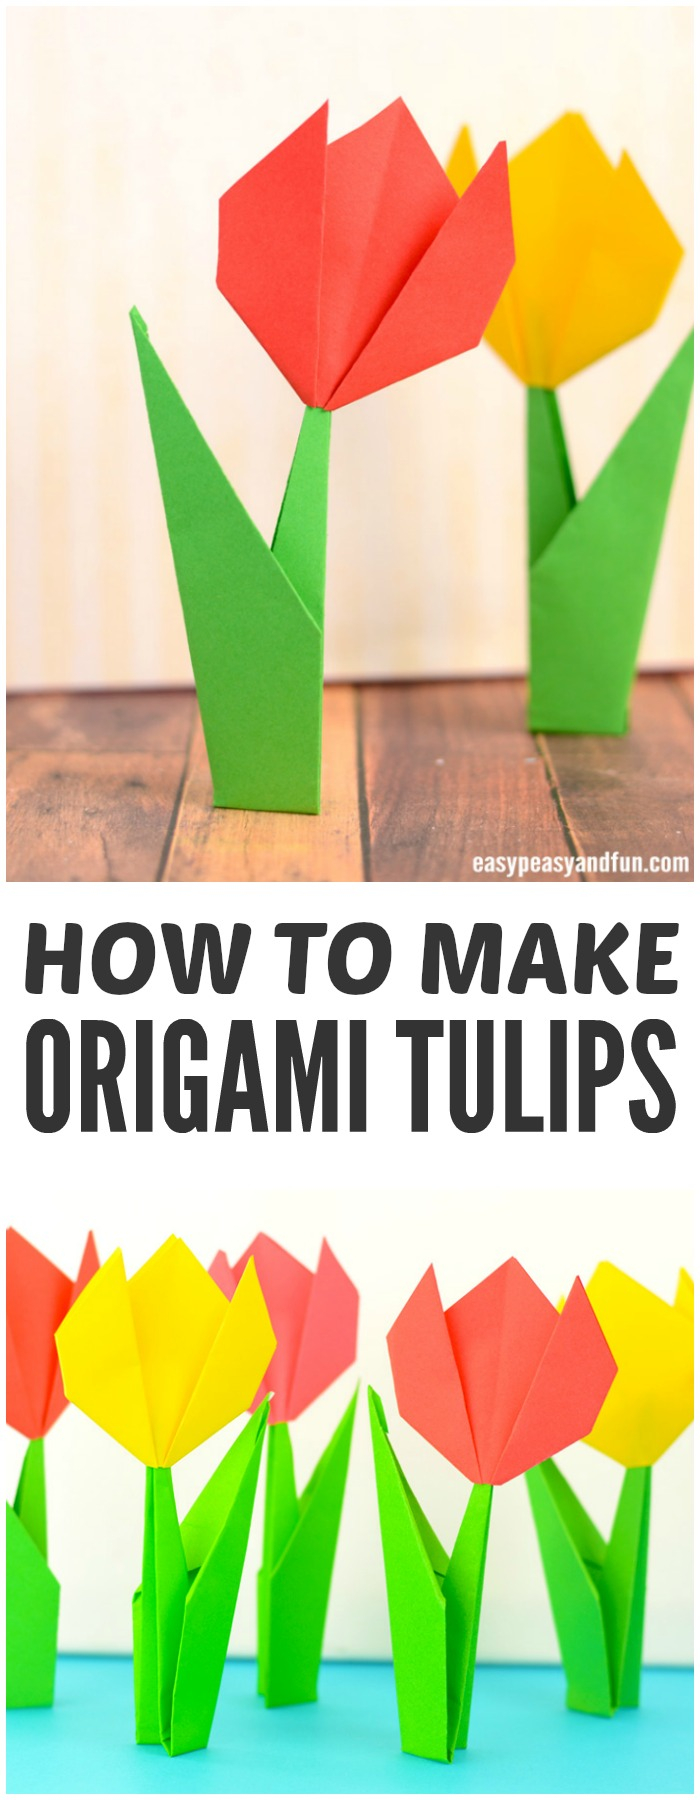 How To Make An Origami Tulip How To Make Origami Flowers Origami Tulip Tutorial With Diagram